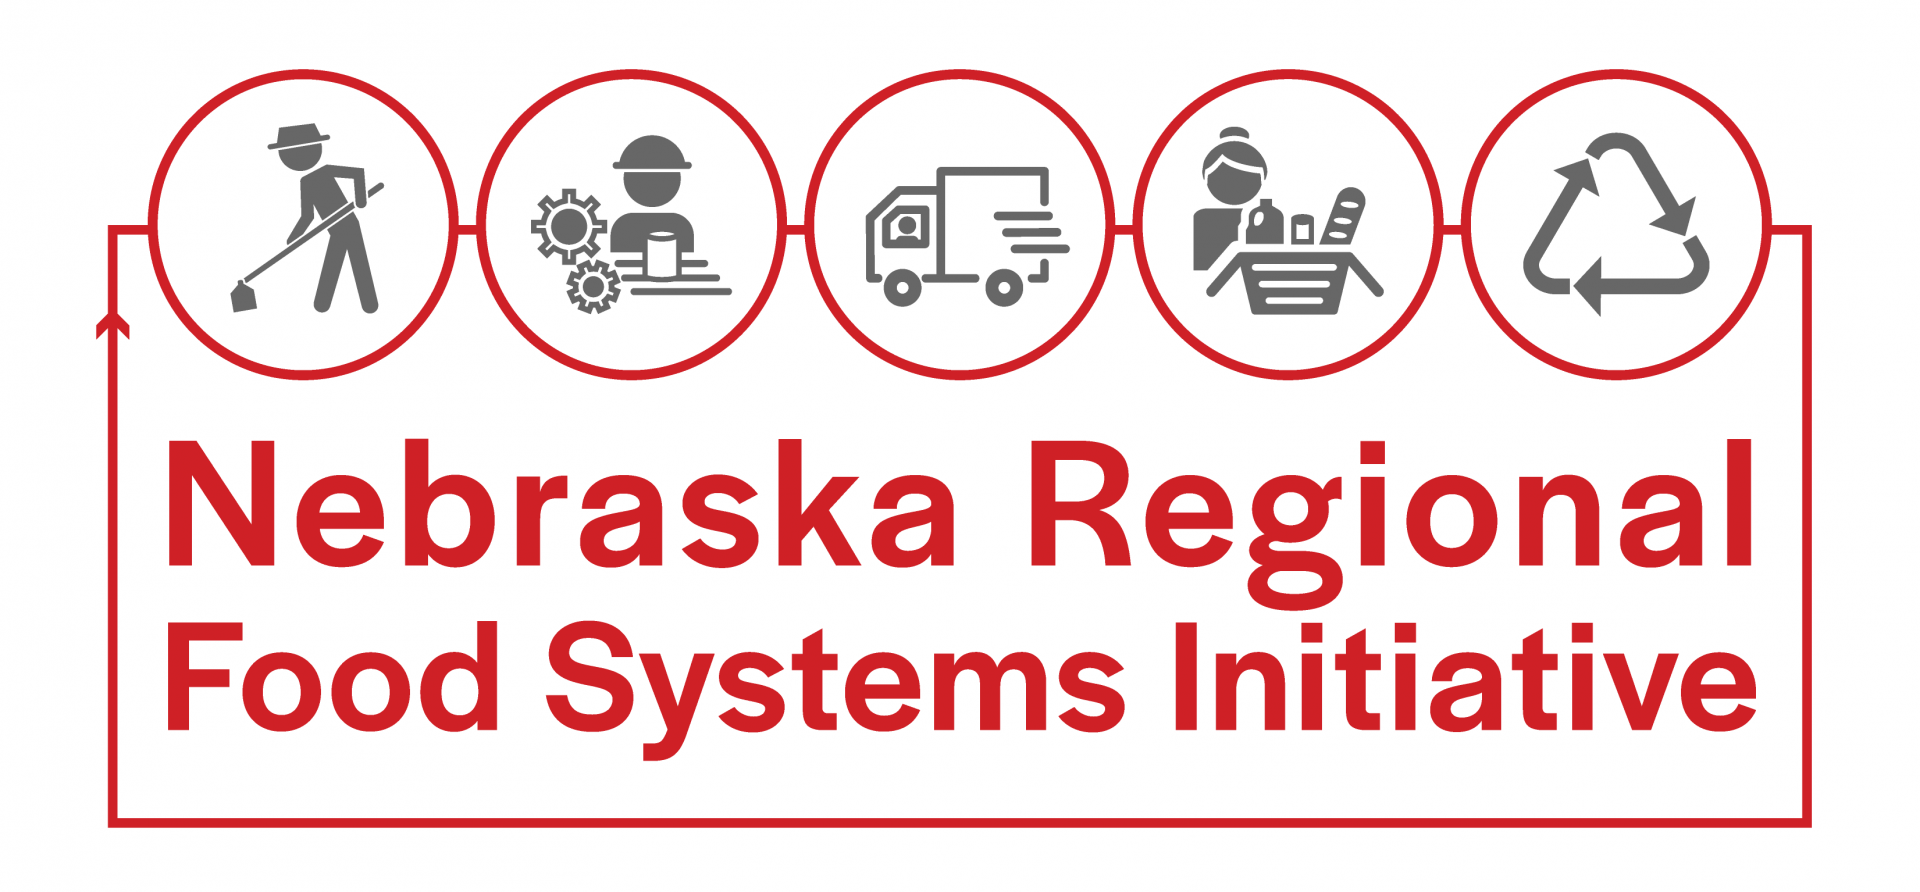 Nebraska Regional Food Systems Initiative